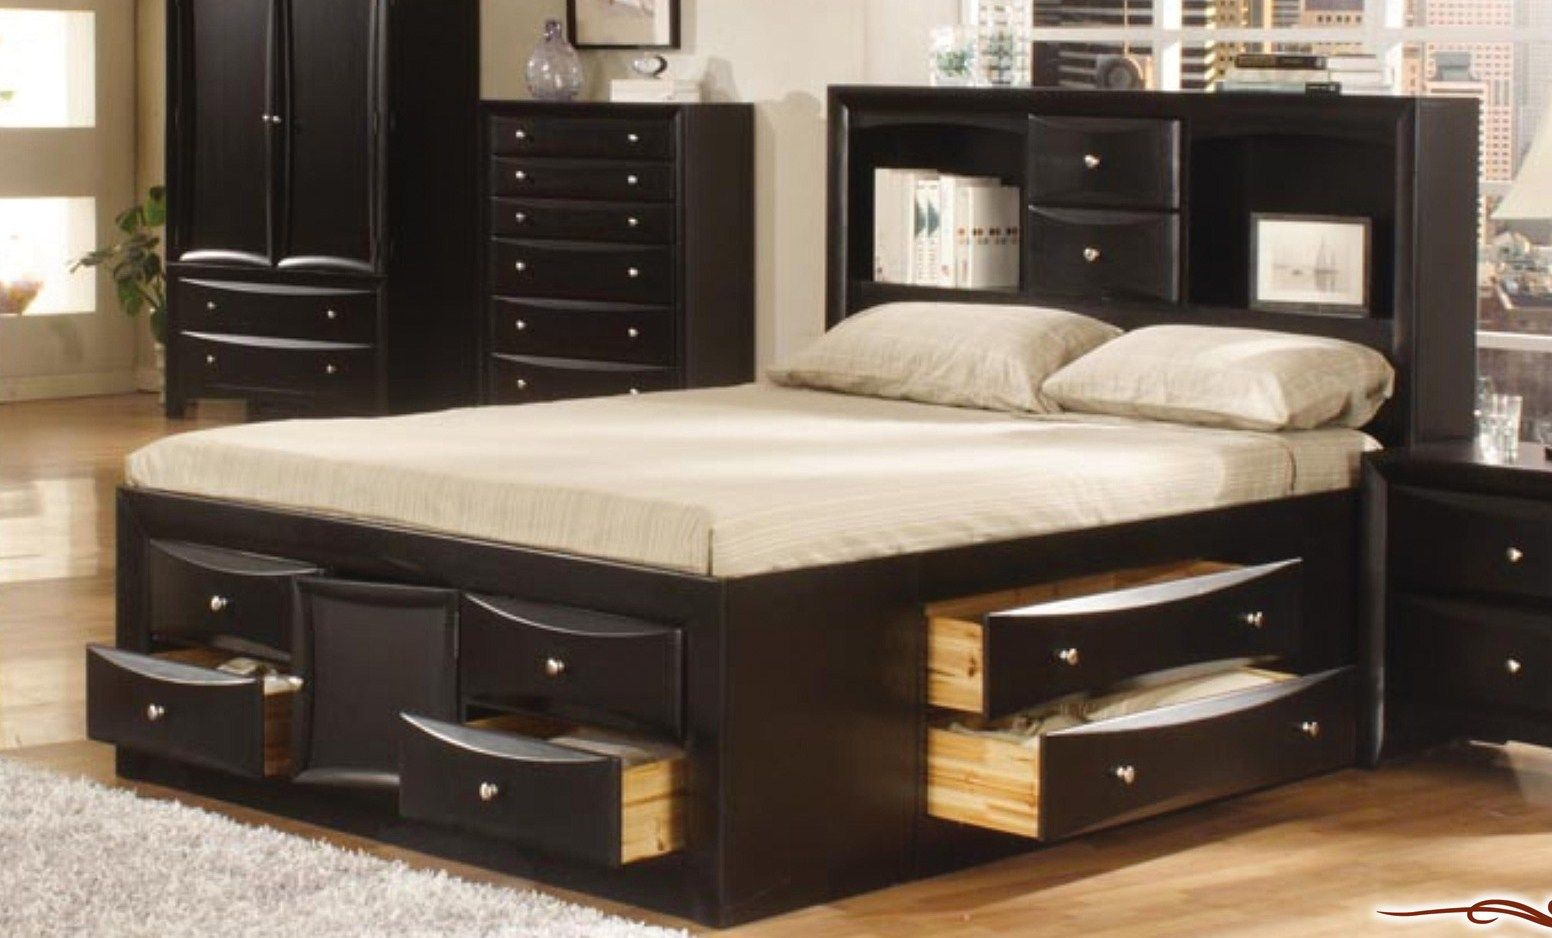 King Size Bedroom Sets With Storage king size bed with storage |  finished bedroom set with storage